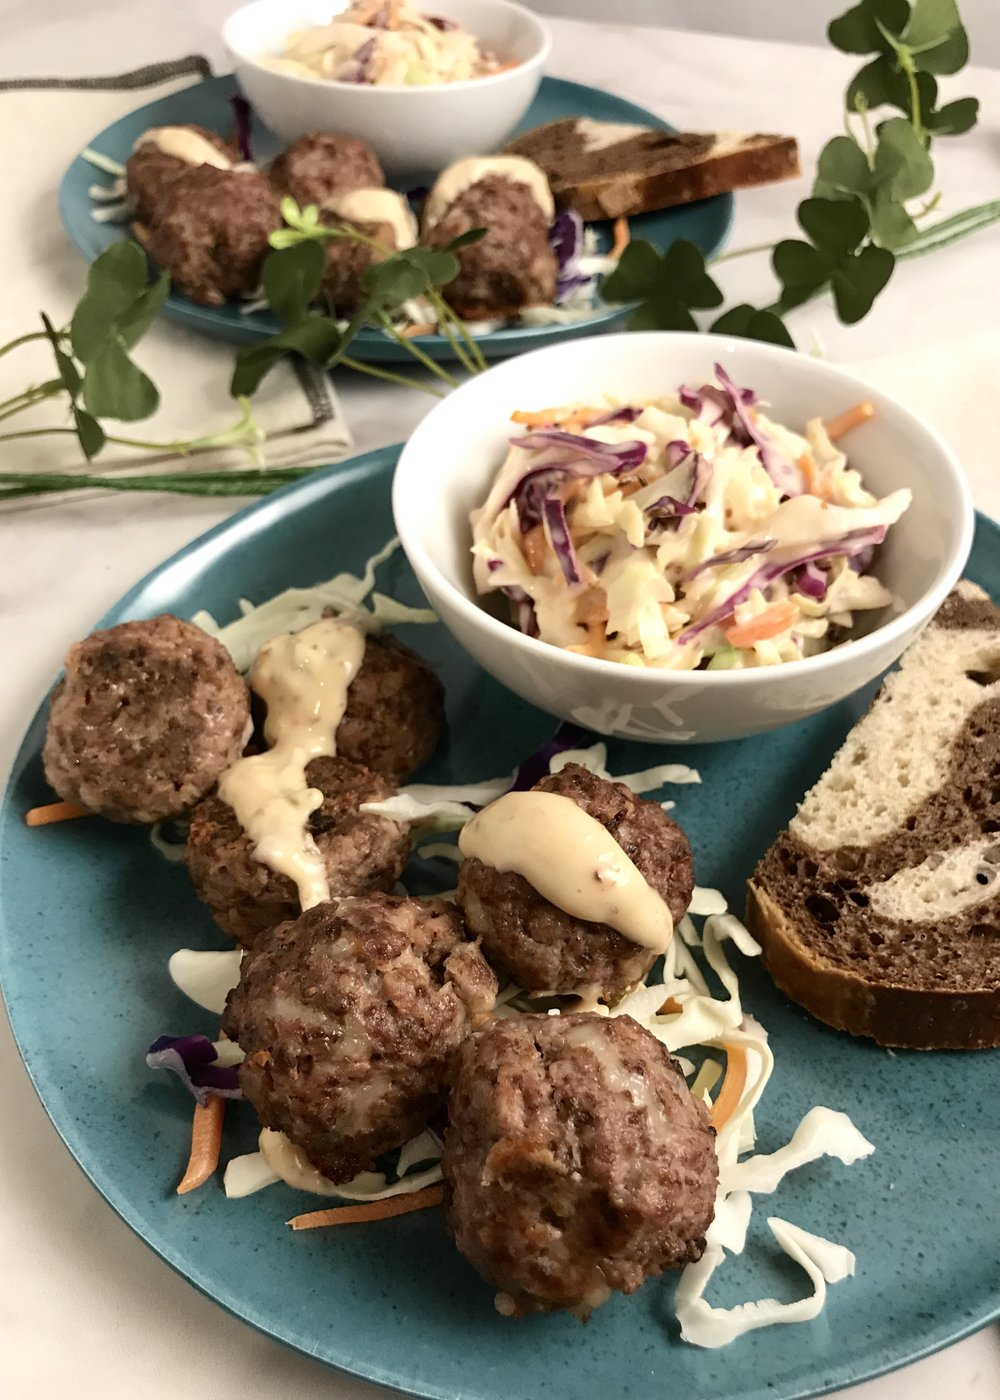 Reuben meatballs bring together the flavors of March in a tasty bite. Photo credit: Anita McVey/Picnic Life Foodie